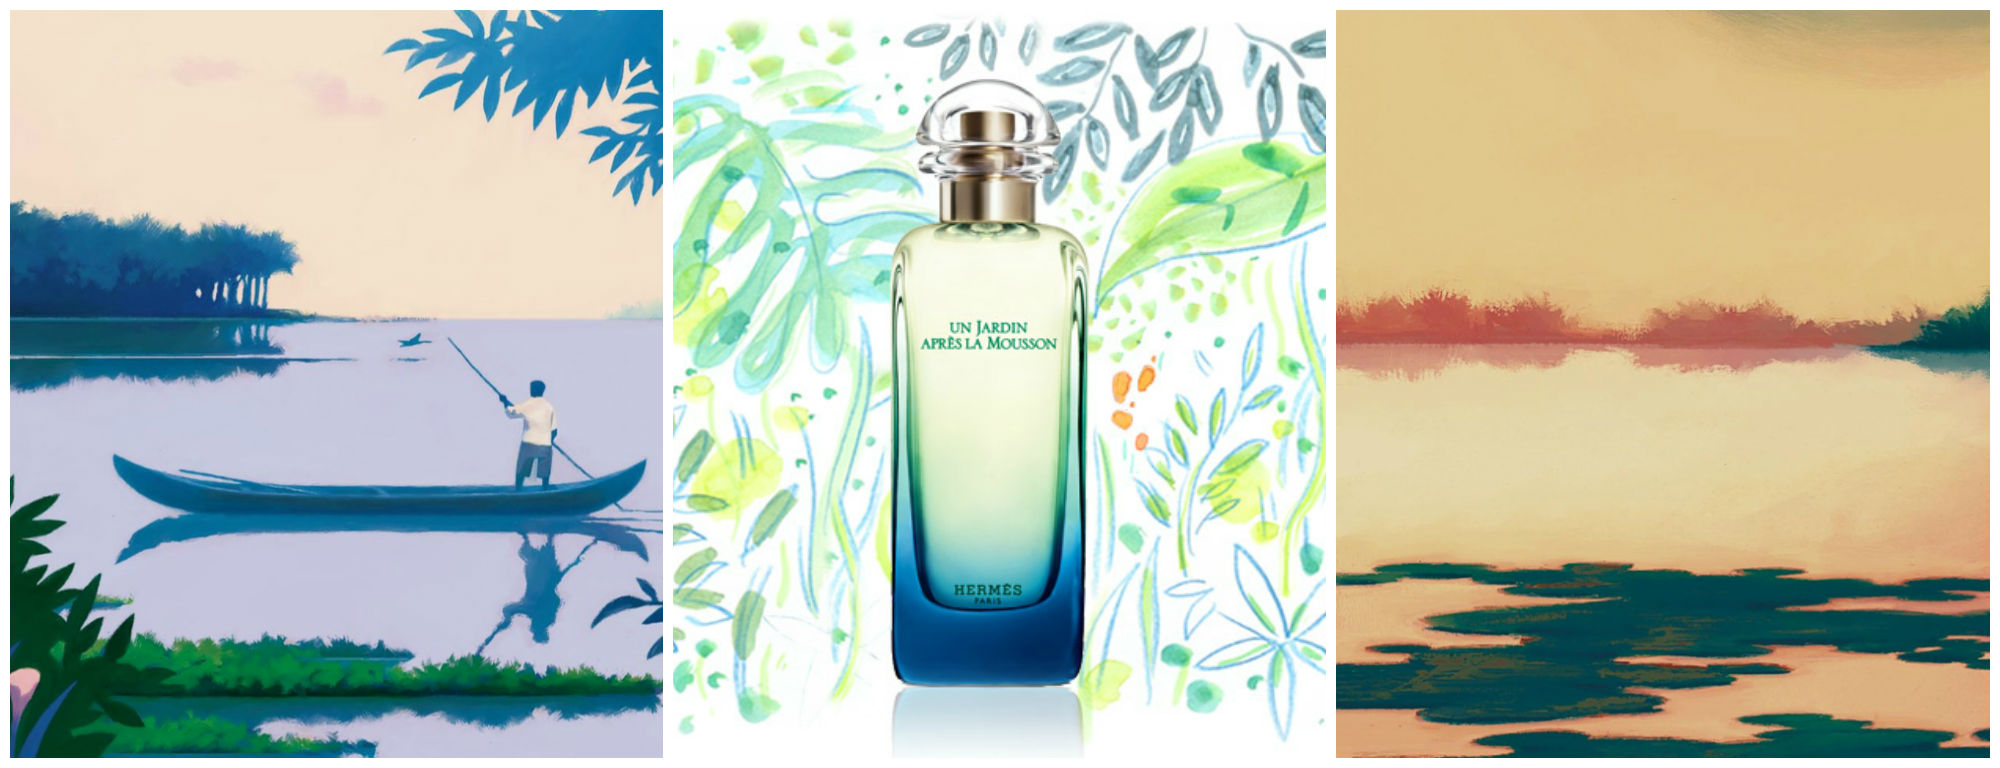 Perfume of the Day: Hermes Un Jardin Apres La Mousson